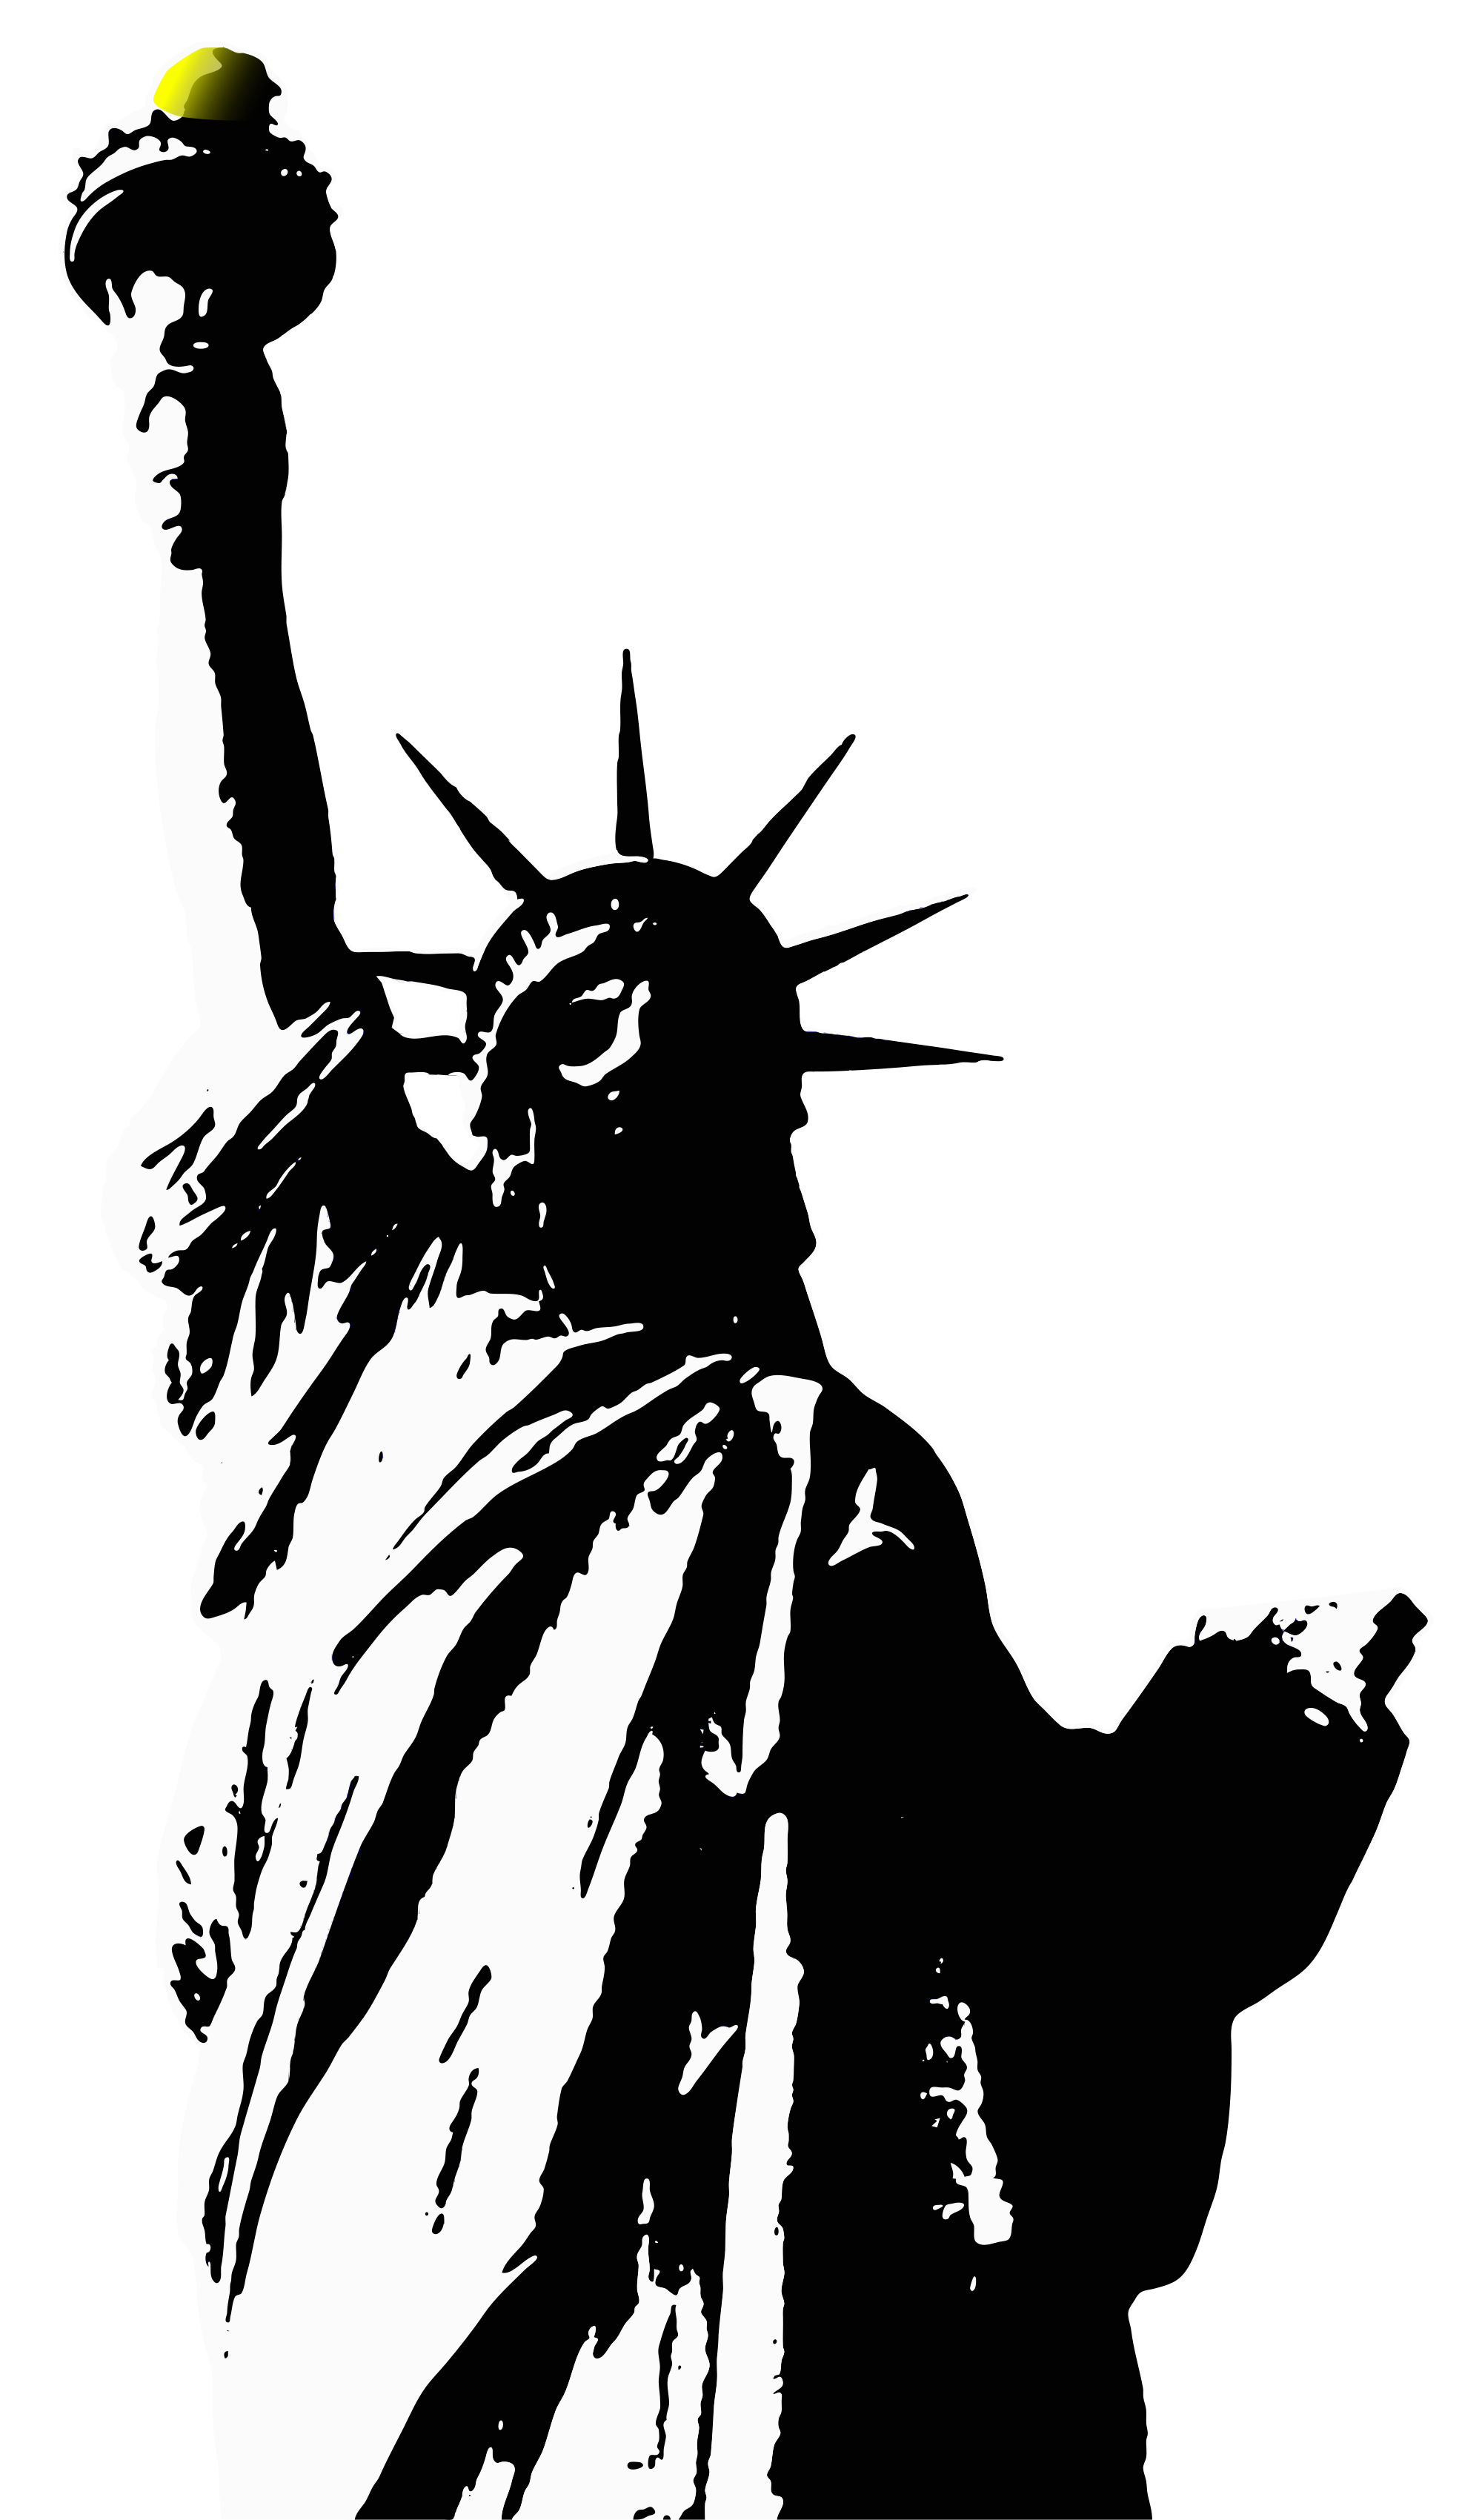 Statue of liberty black and white png. Image purepng free transparent